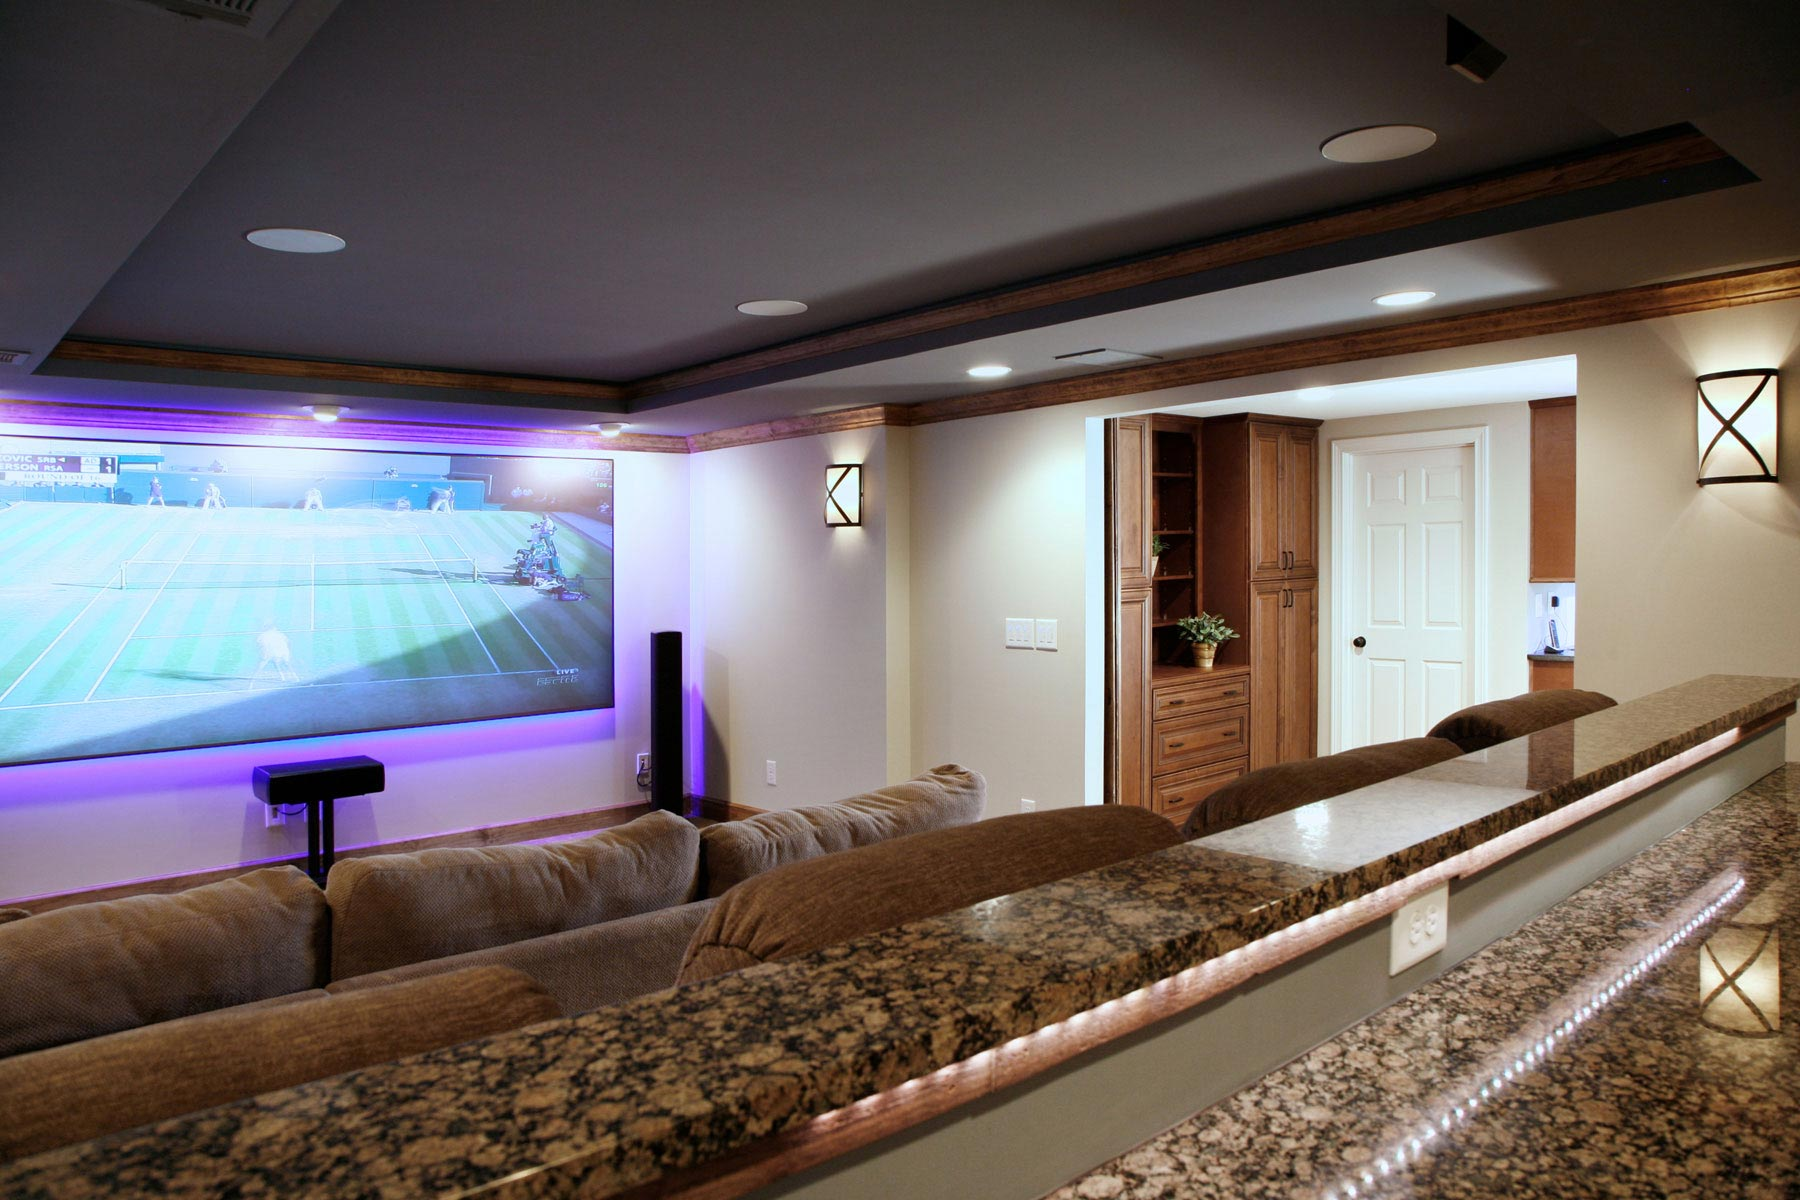 Inside view of home theater